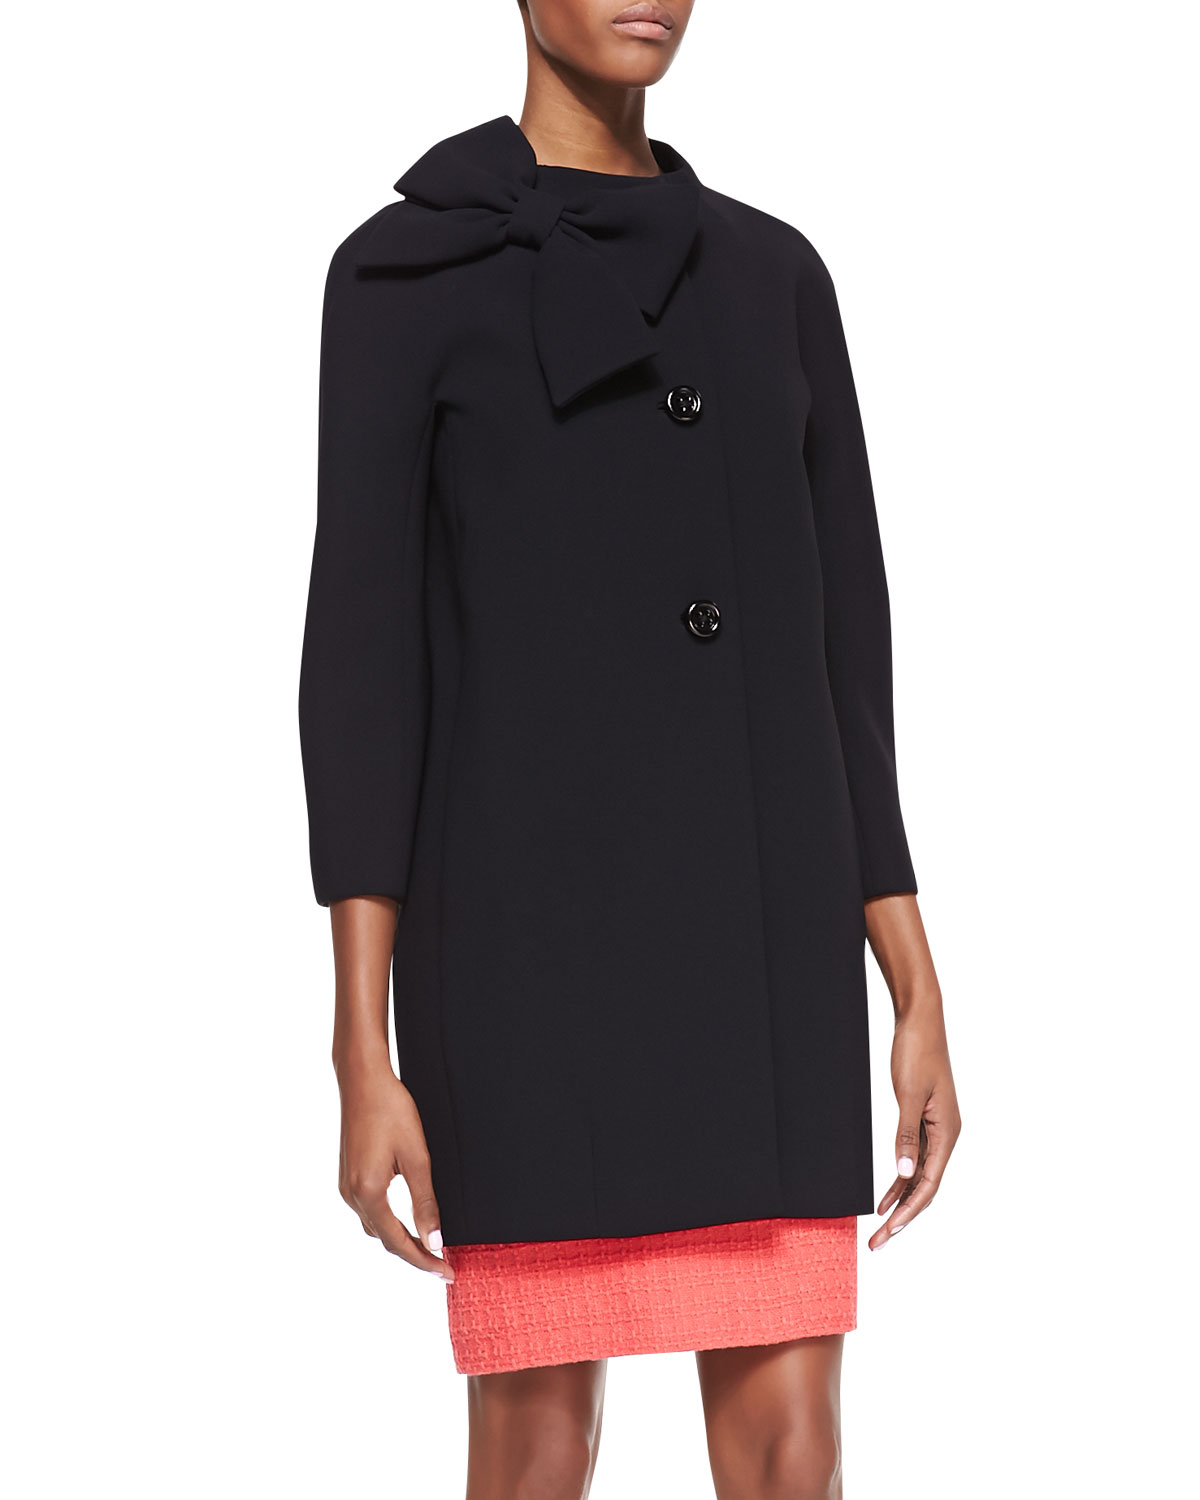 Womens dorothy coat with side collar bow, black   kate spade new york